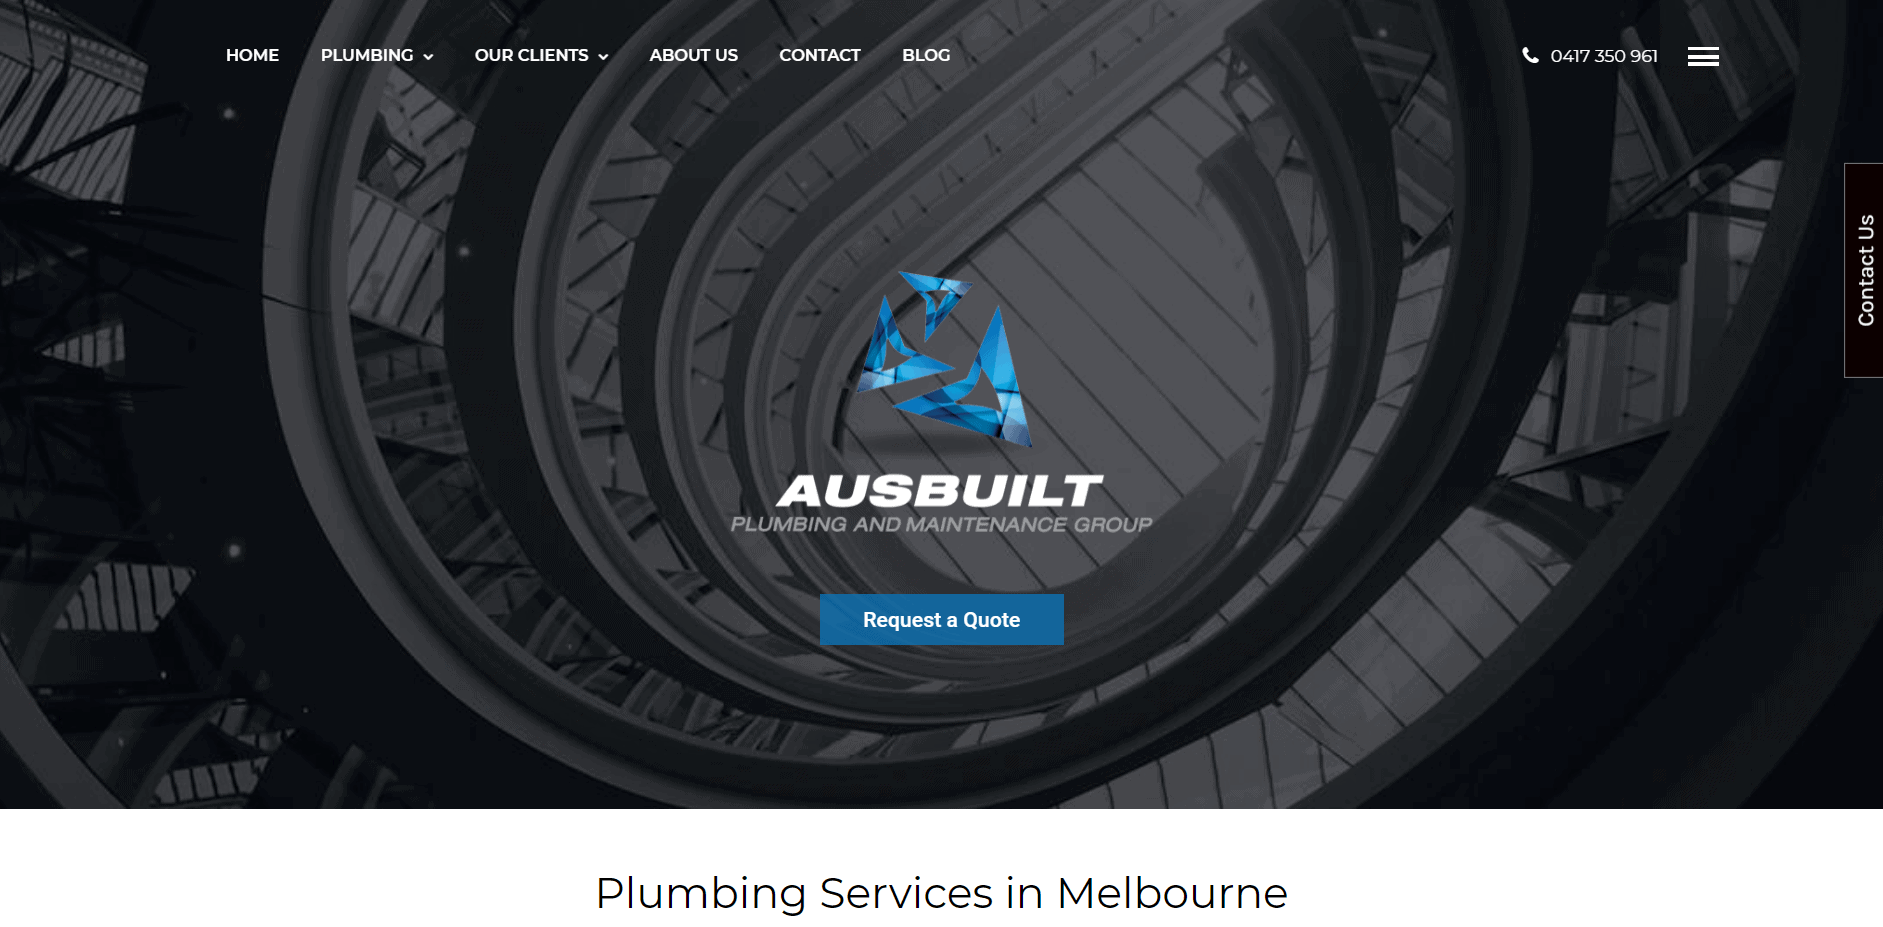 Ausbuilt Plumbing And Maintenance Group